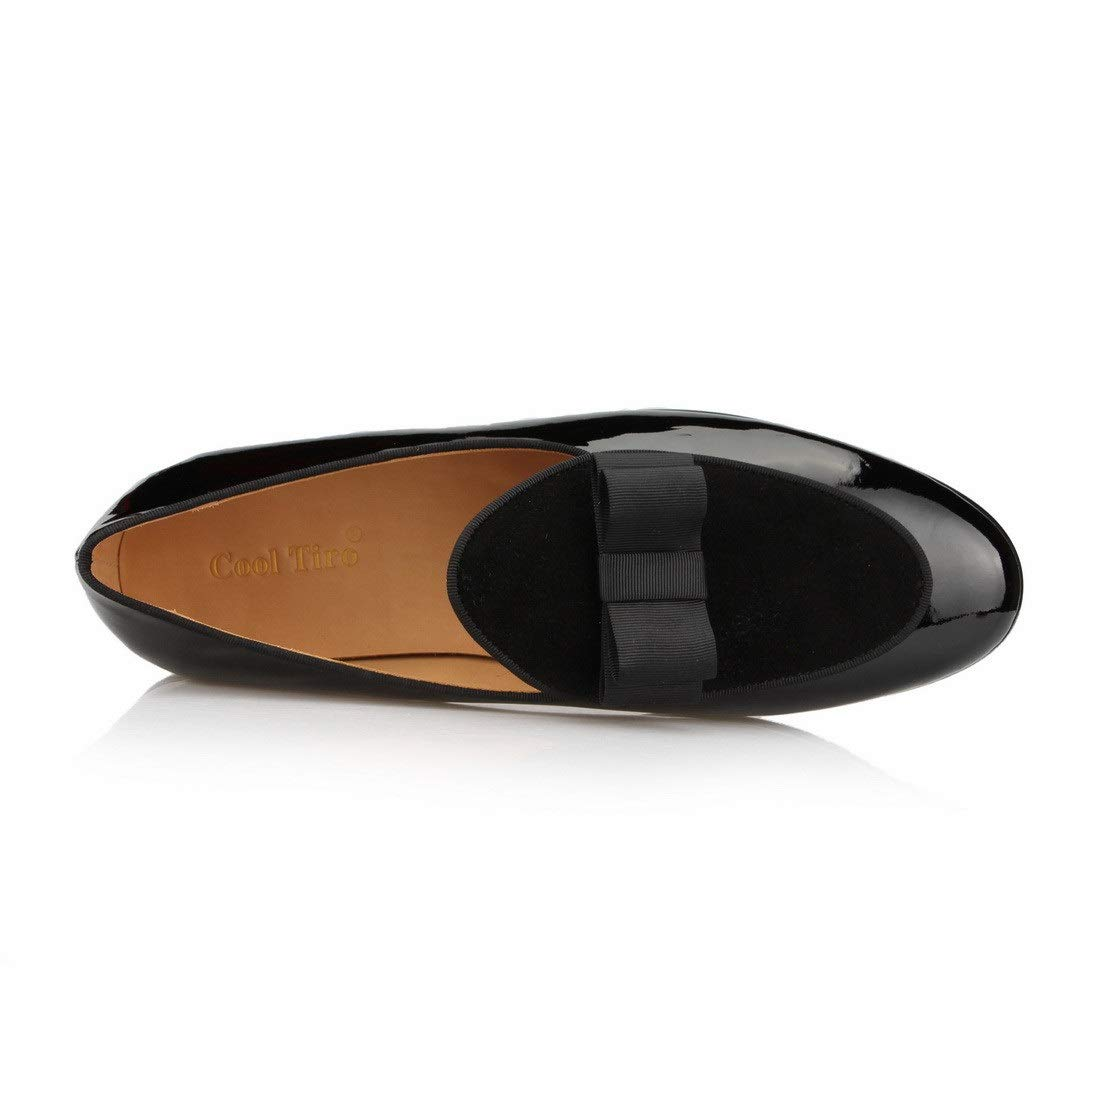 6a7530cdf861 COOL TIRO Patent Leather Loafers Bow Tie Flats Wedding Mens Dress Shoes  Casual Slip on